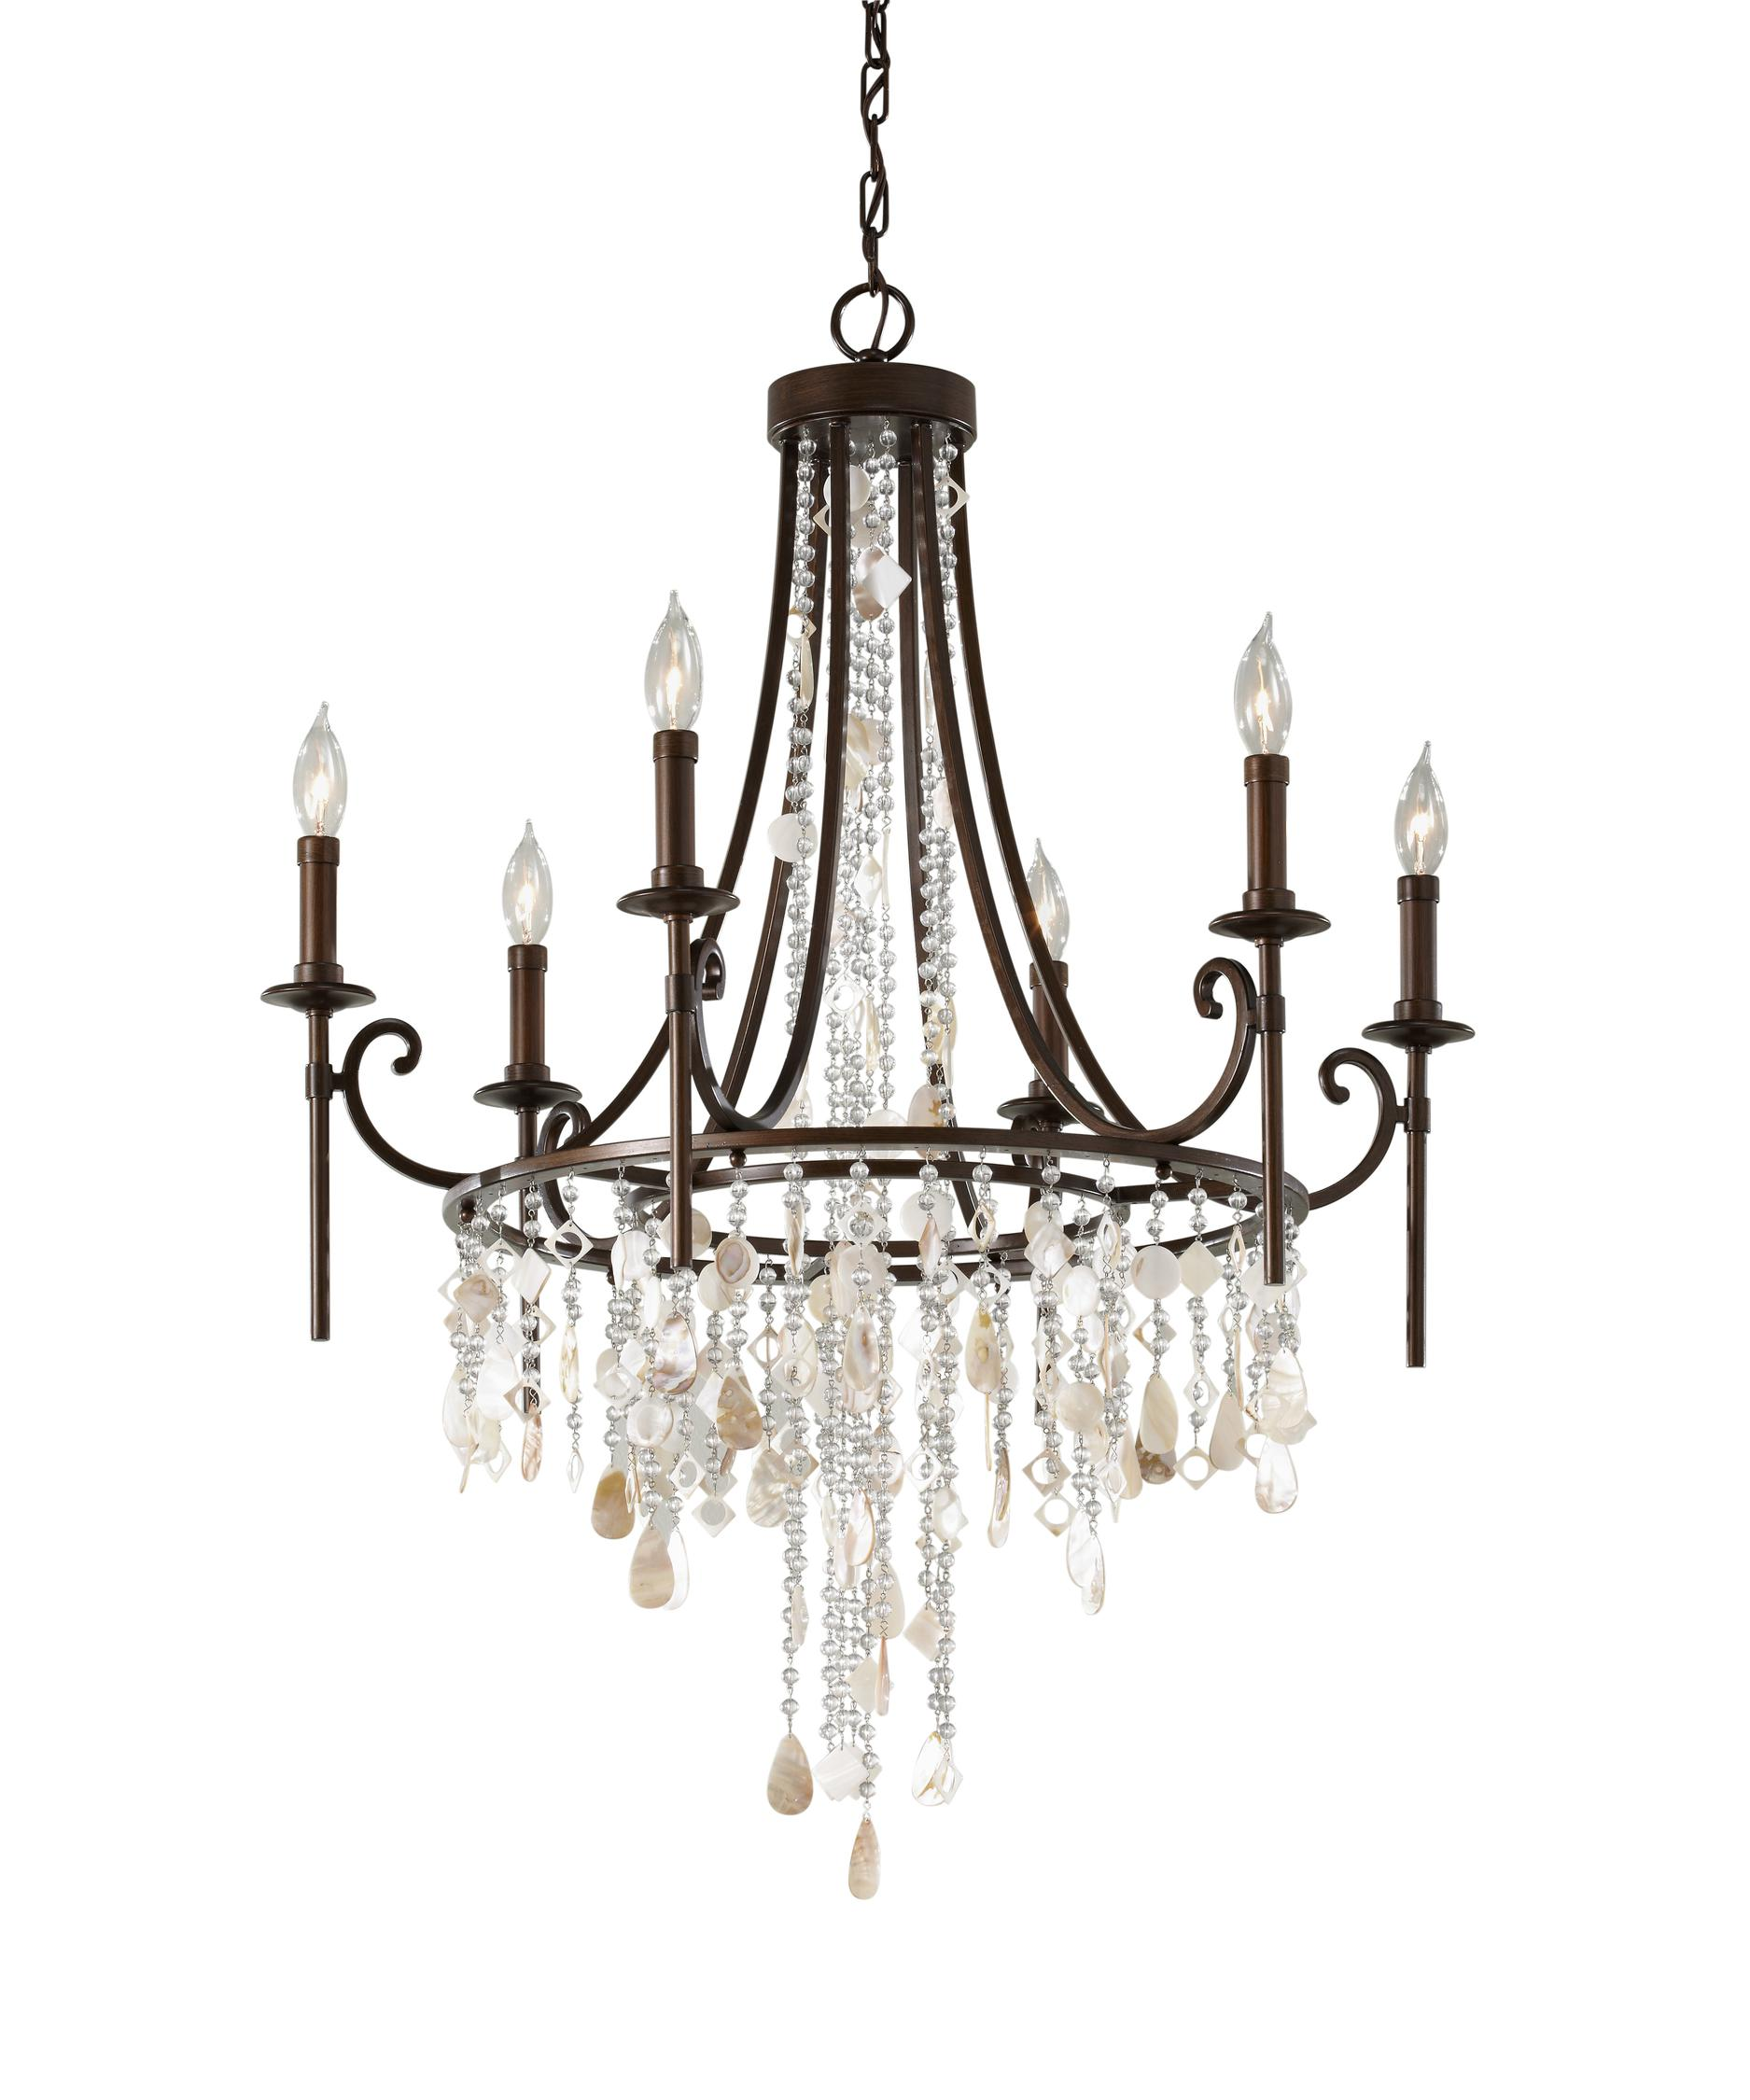 Murray Feiss Cascade 28 Inch Wide 6 Light Chandelier – Murray Feiss Chandeliers